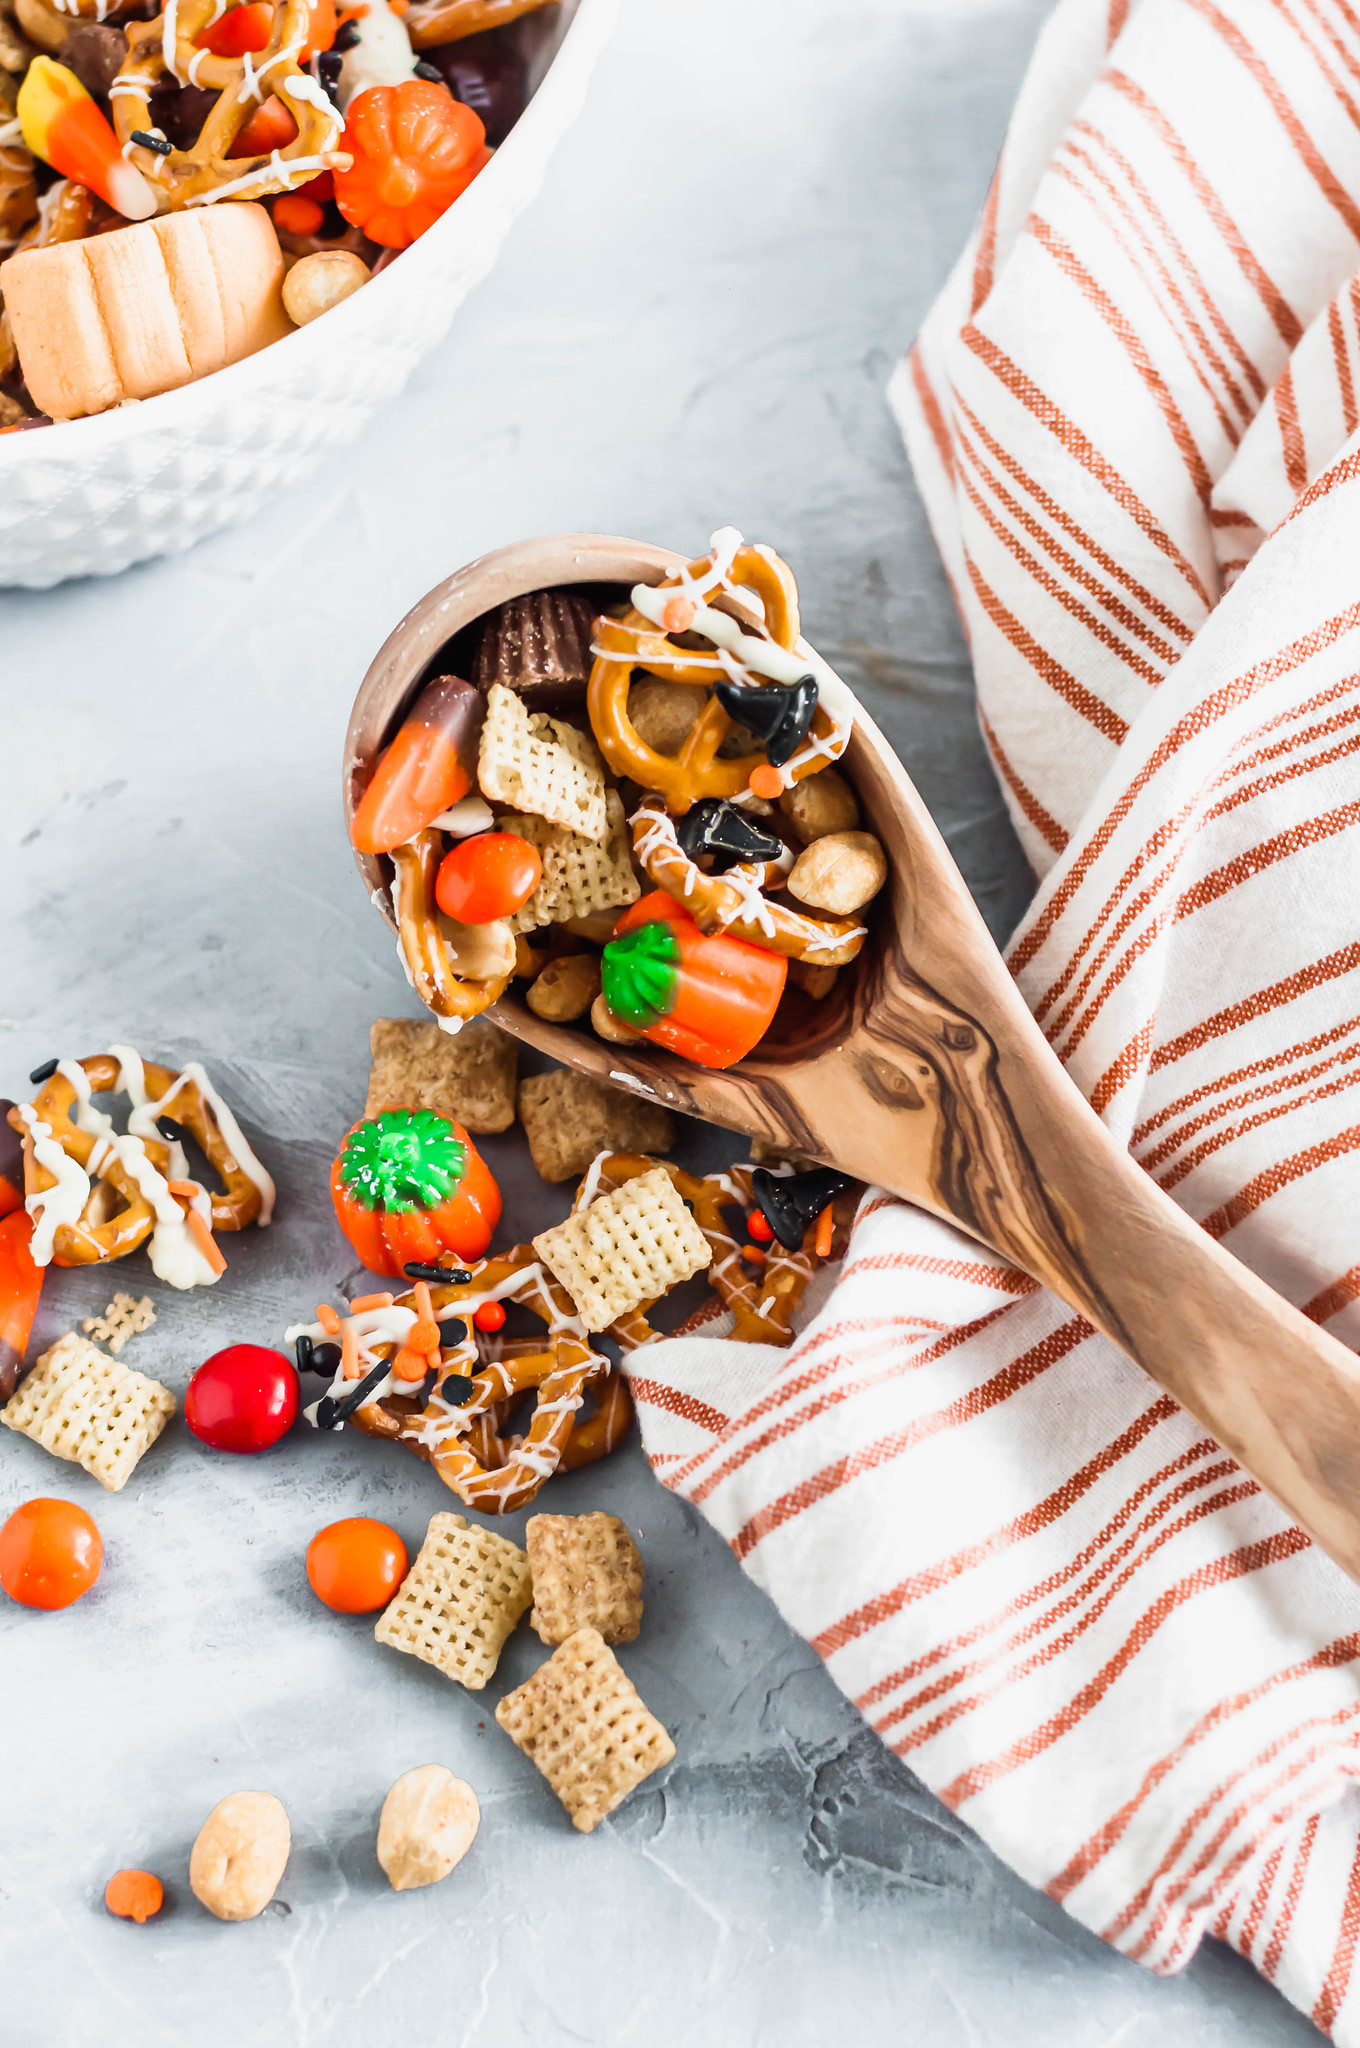 Need a fun snack for October? This Halloween Snack Mix is the perfect combination of sweet and salty ingredients and will be a huge hit with your family.